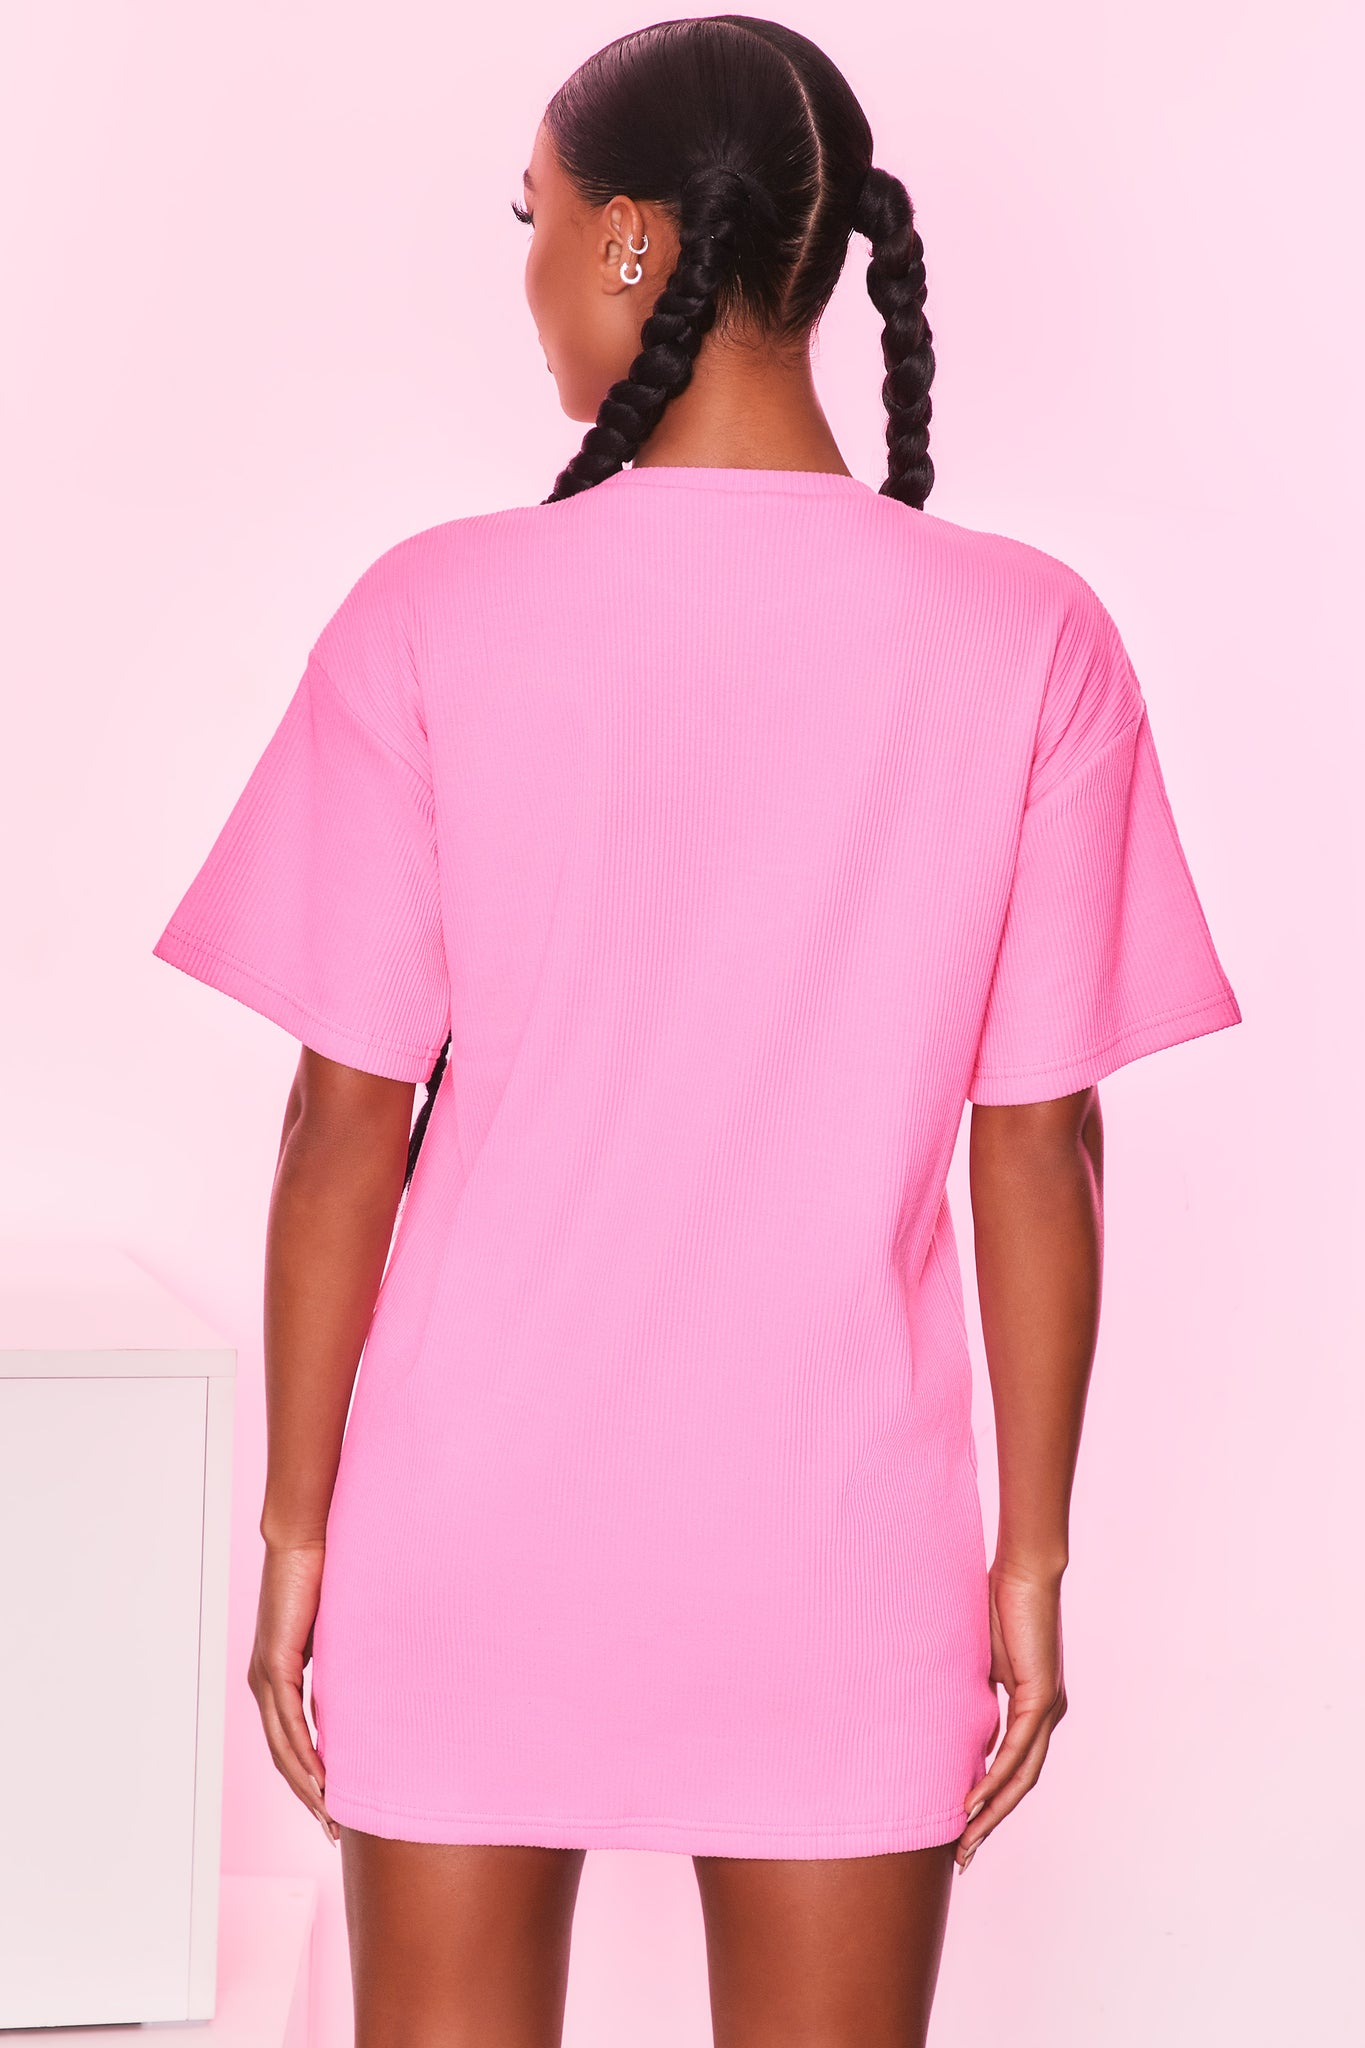 Round neck short sleeve oversized ribbed t-shirt in candy pink. Image 3 of 6.